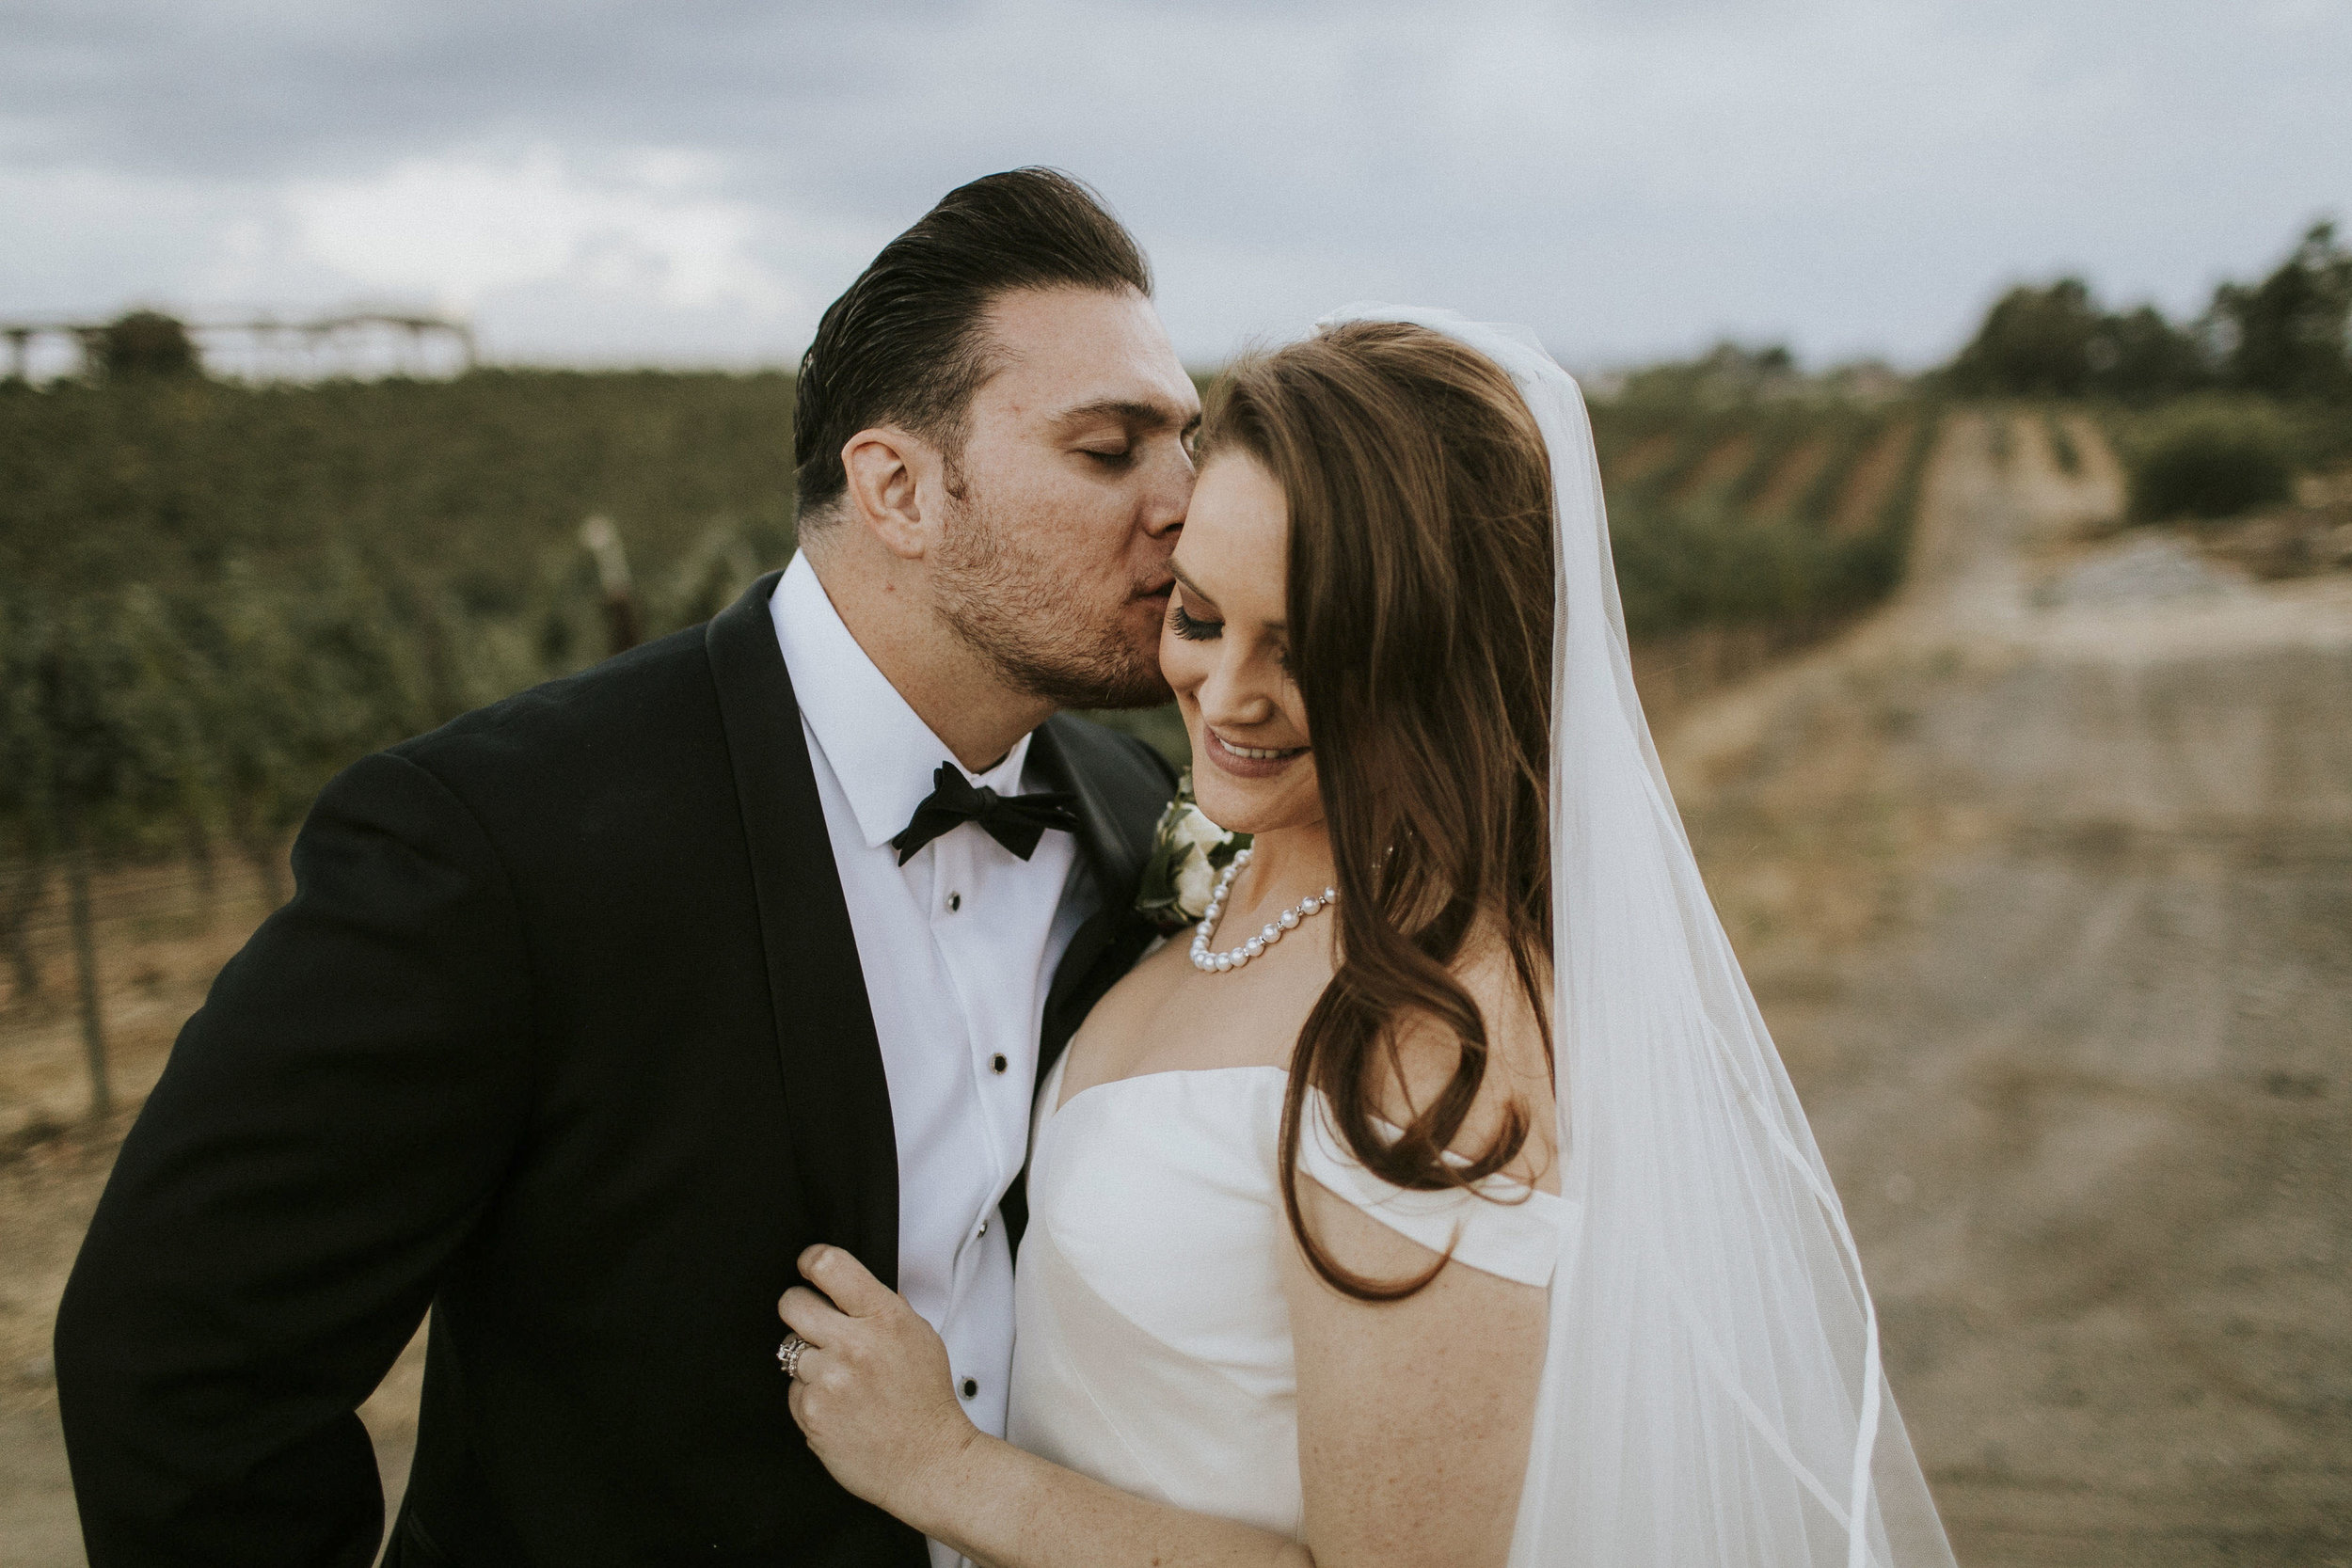 Domenica Beauty _ Hair and Makeup Artist _Wedding _ Temecula, CA _ Catherine and Darryl _ 35.JPG